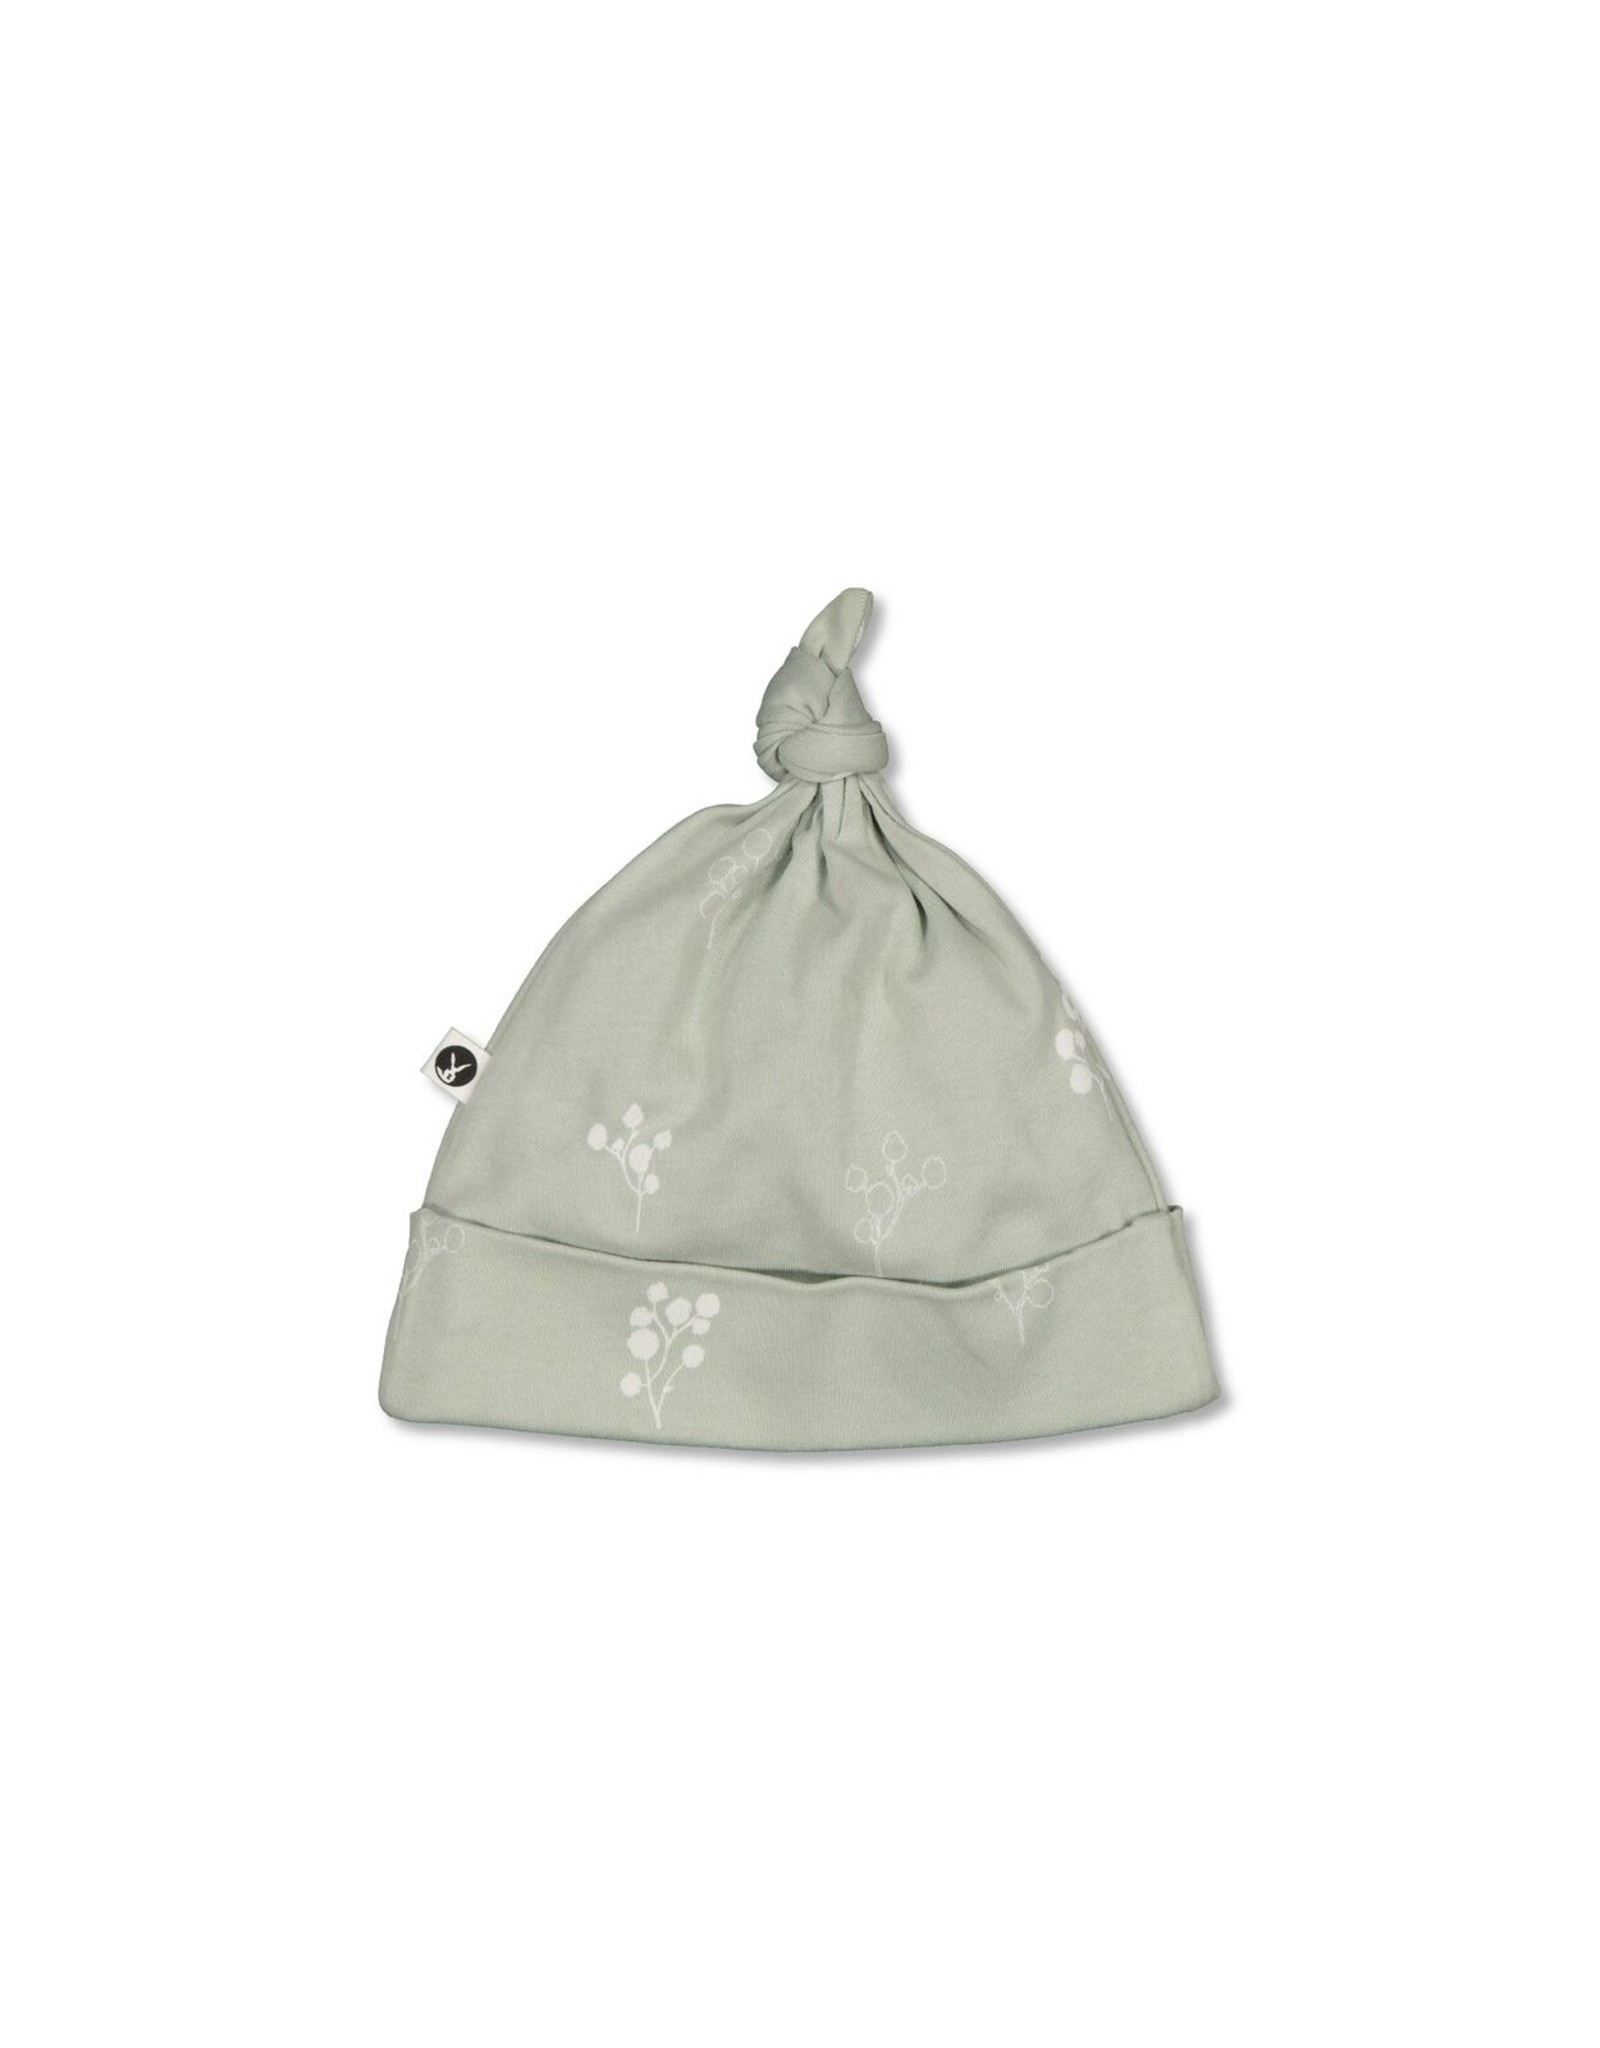 Burrow & Be Burrow & Be - Top Knot Hat Sprig